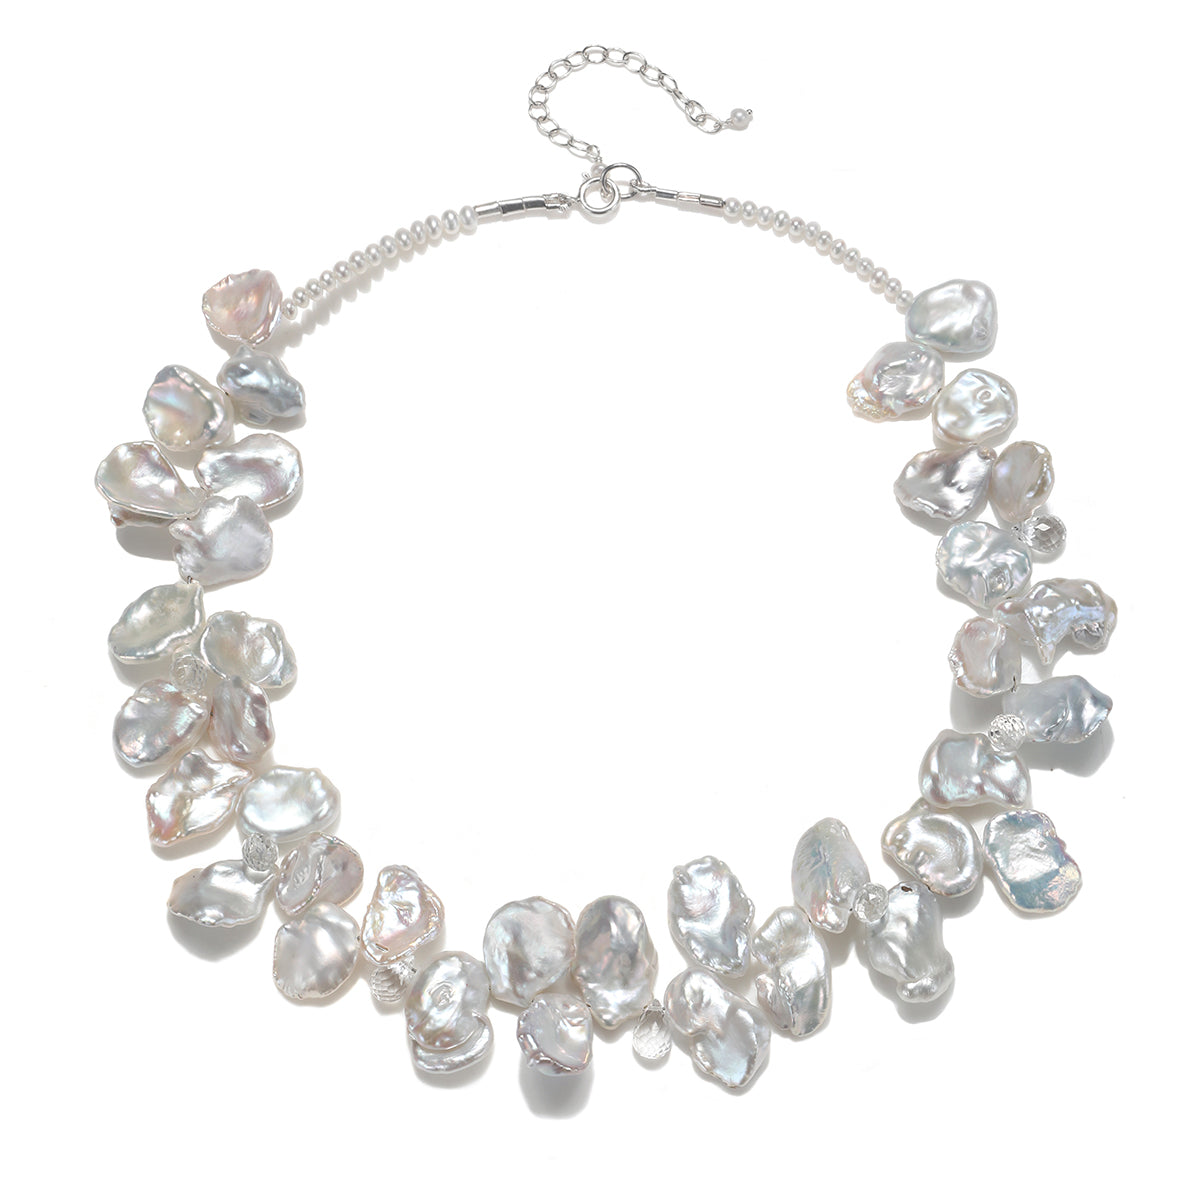 White Keshi Pearl with White Topaz Necklace Silver